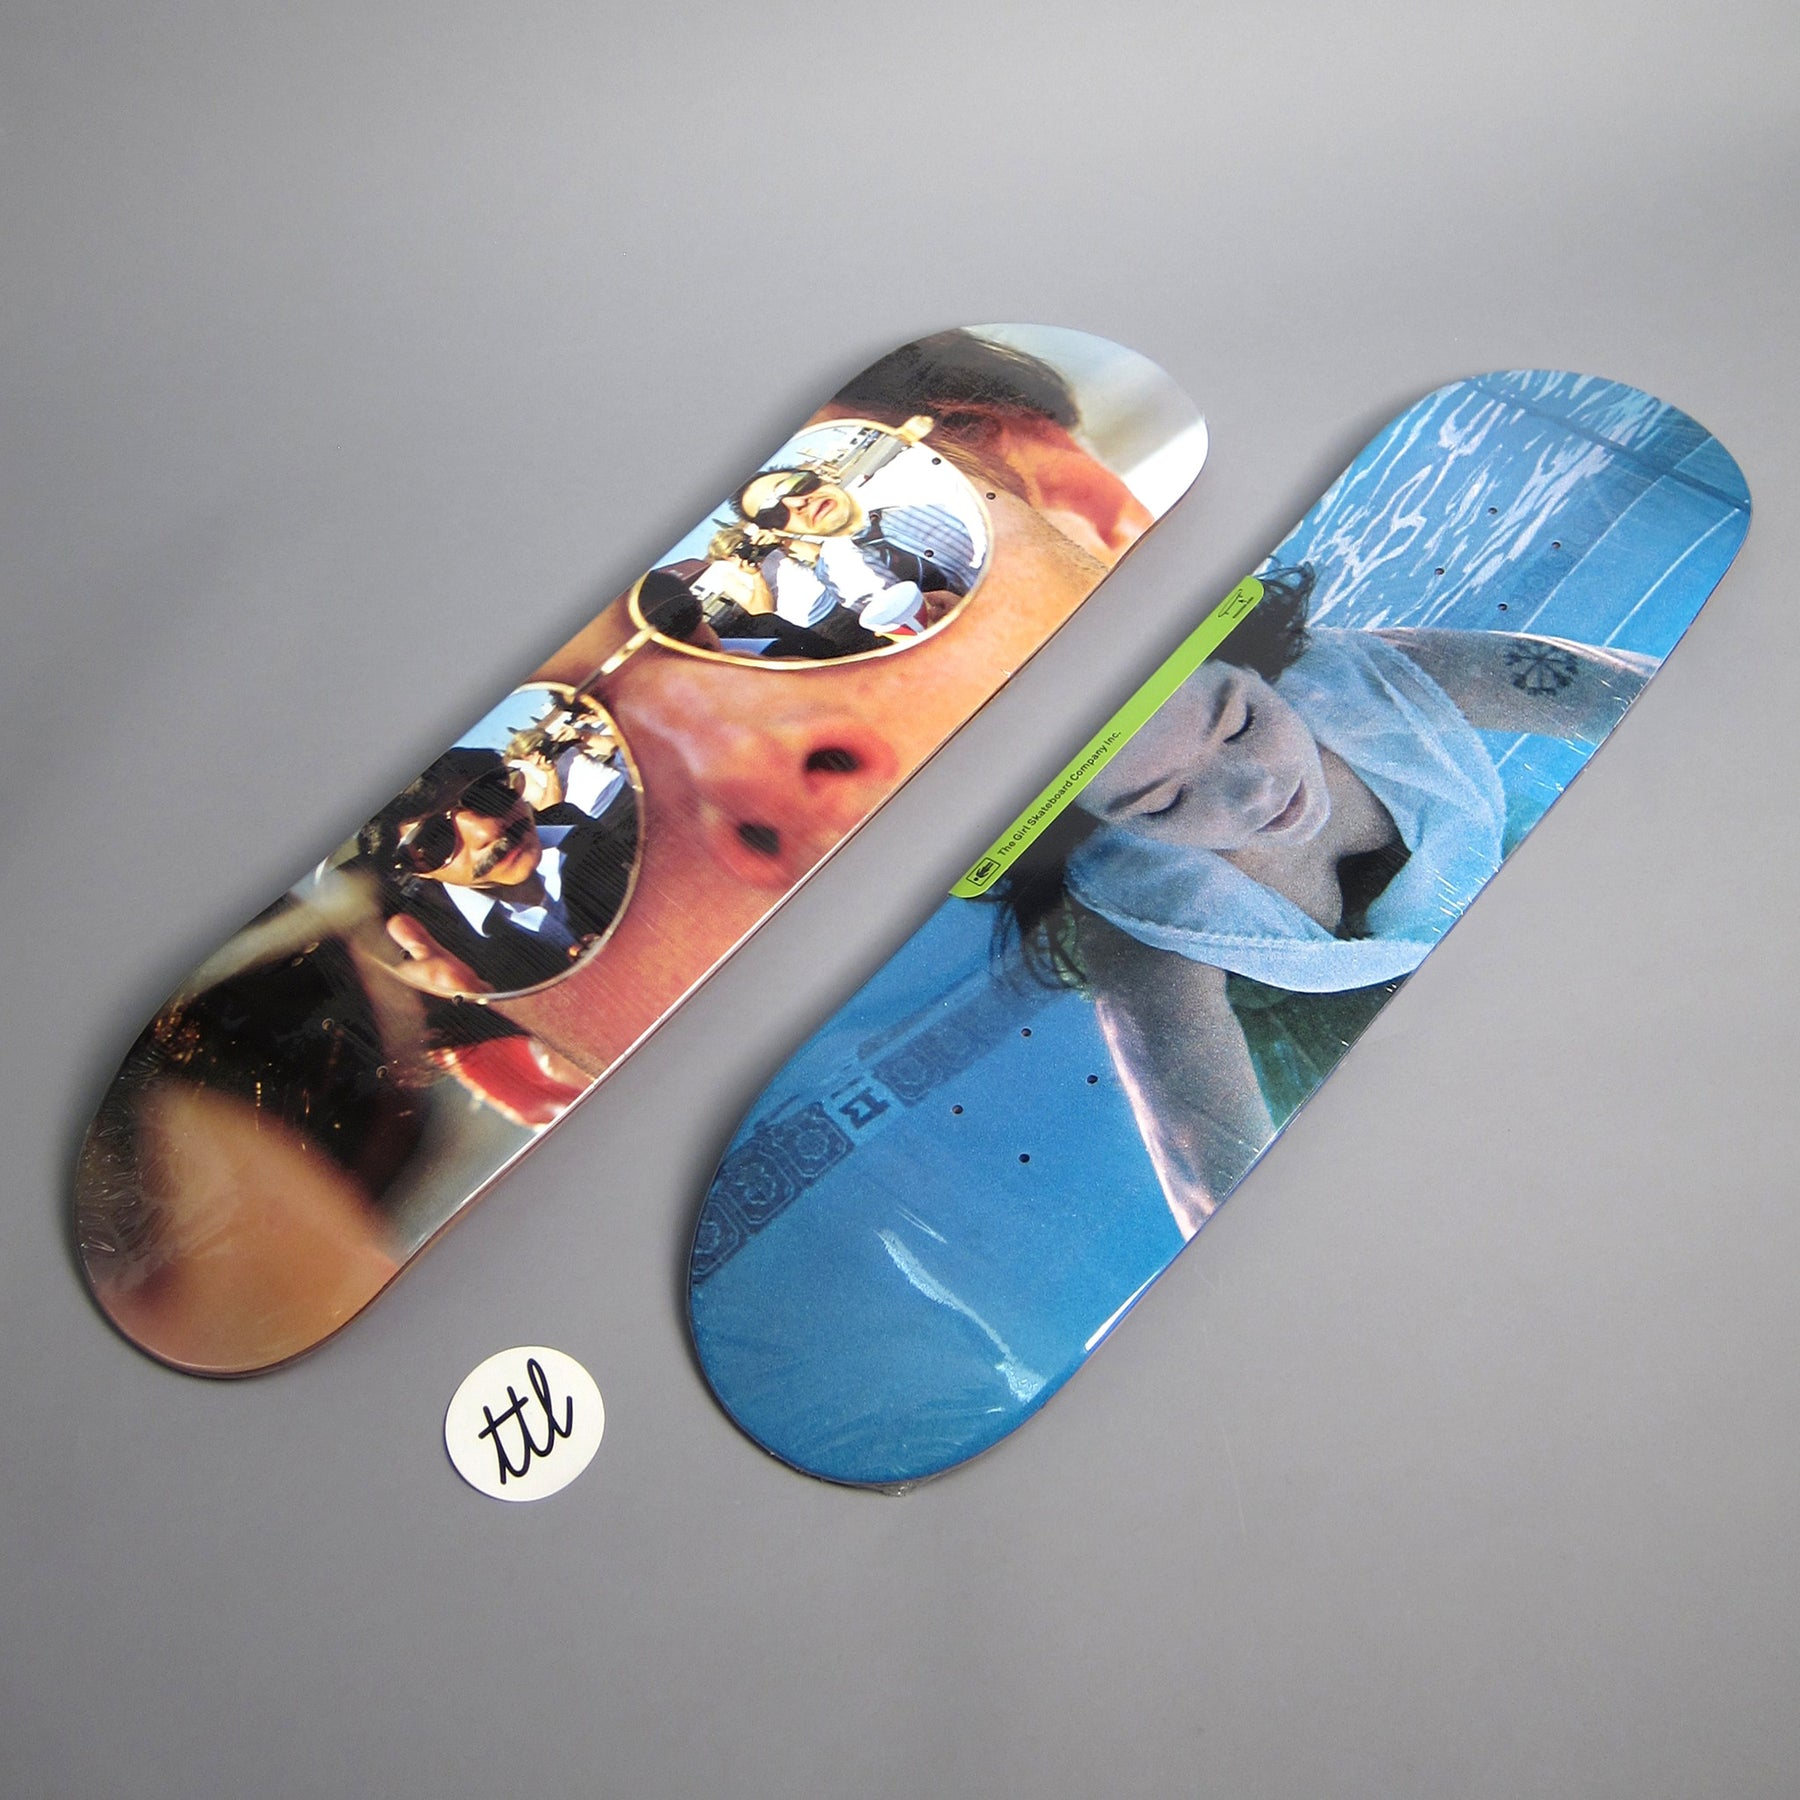 Pige Beastie Boys Spike Jonze 825 Skateboard Deck-4235